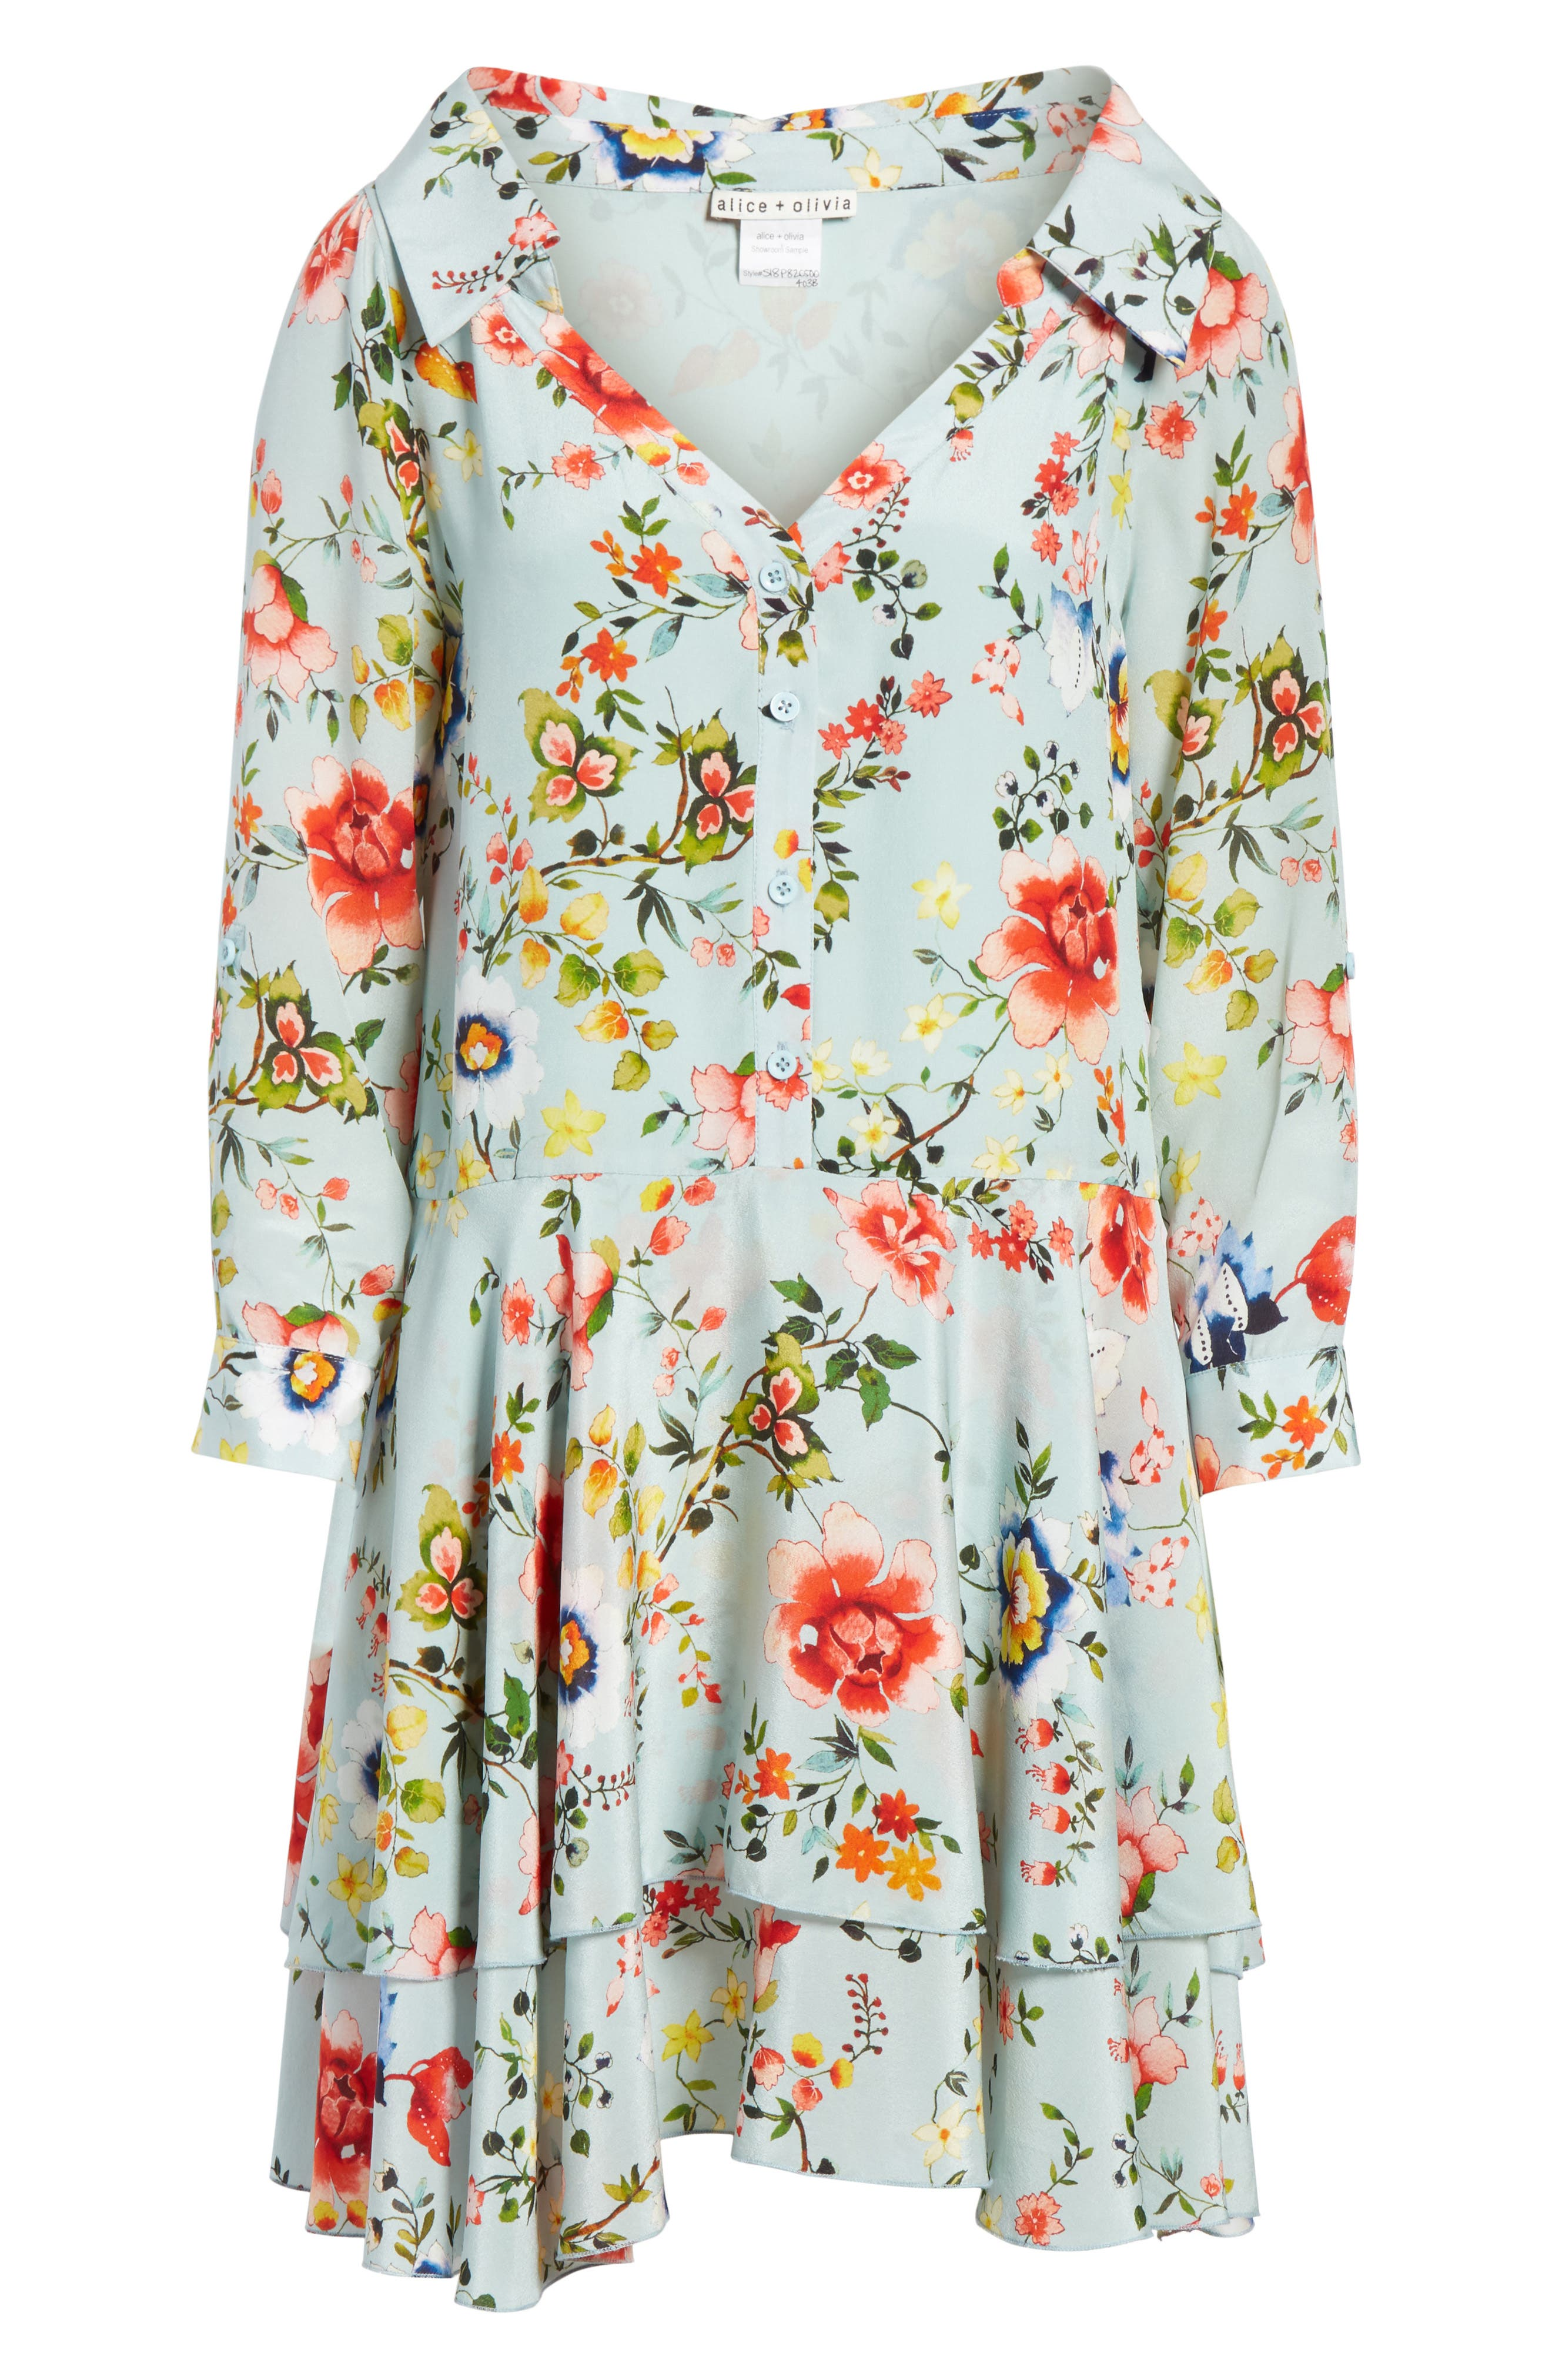 Moore Floral Silk Tunic Dress,                             Alternate thumbnail 6, color,                             474